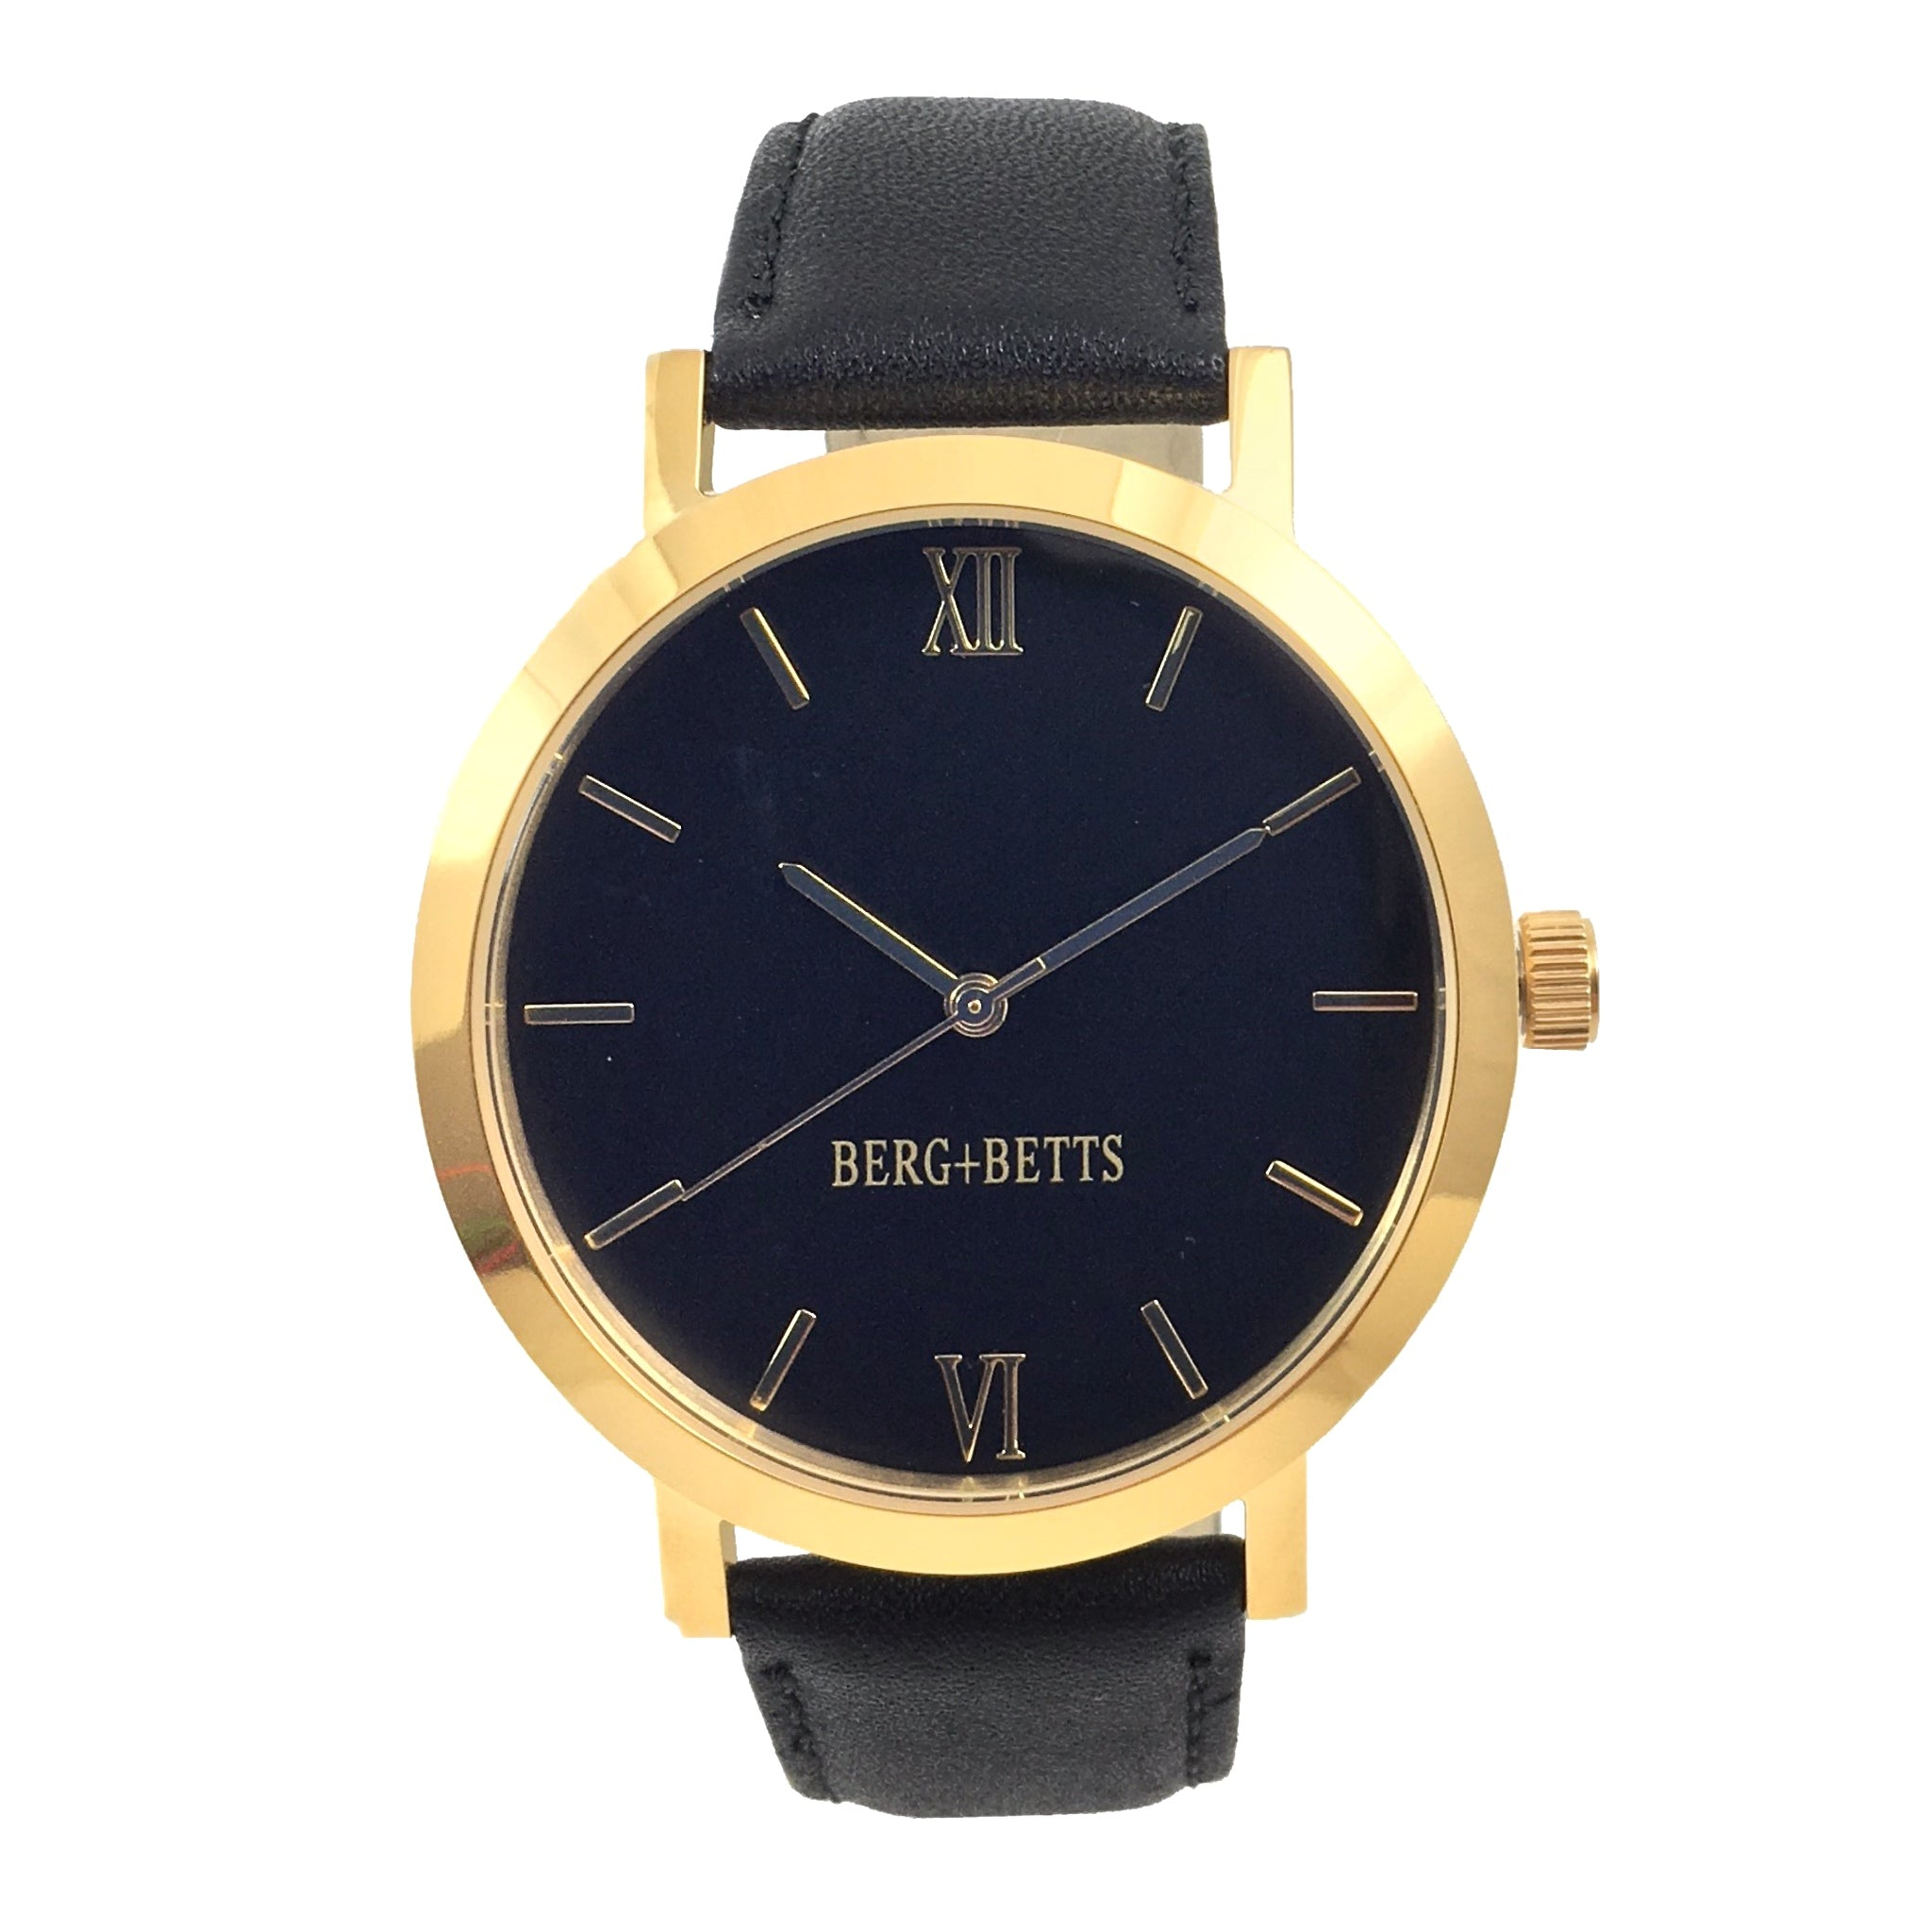 BERG + BETTS | Ethically made Gold watch with black face and sustainable black strap